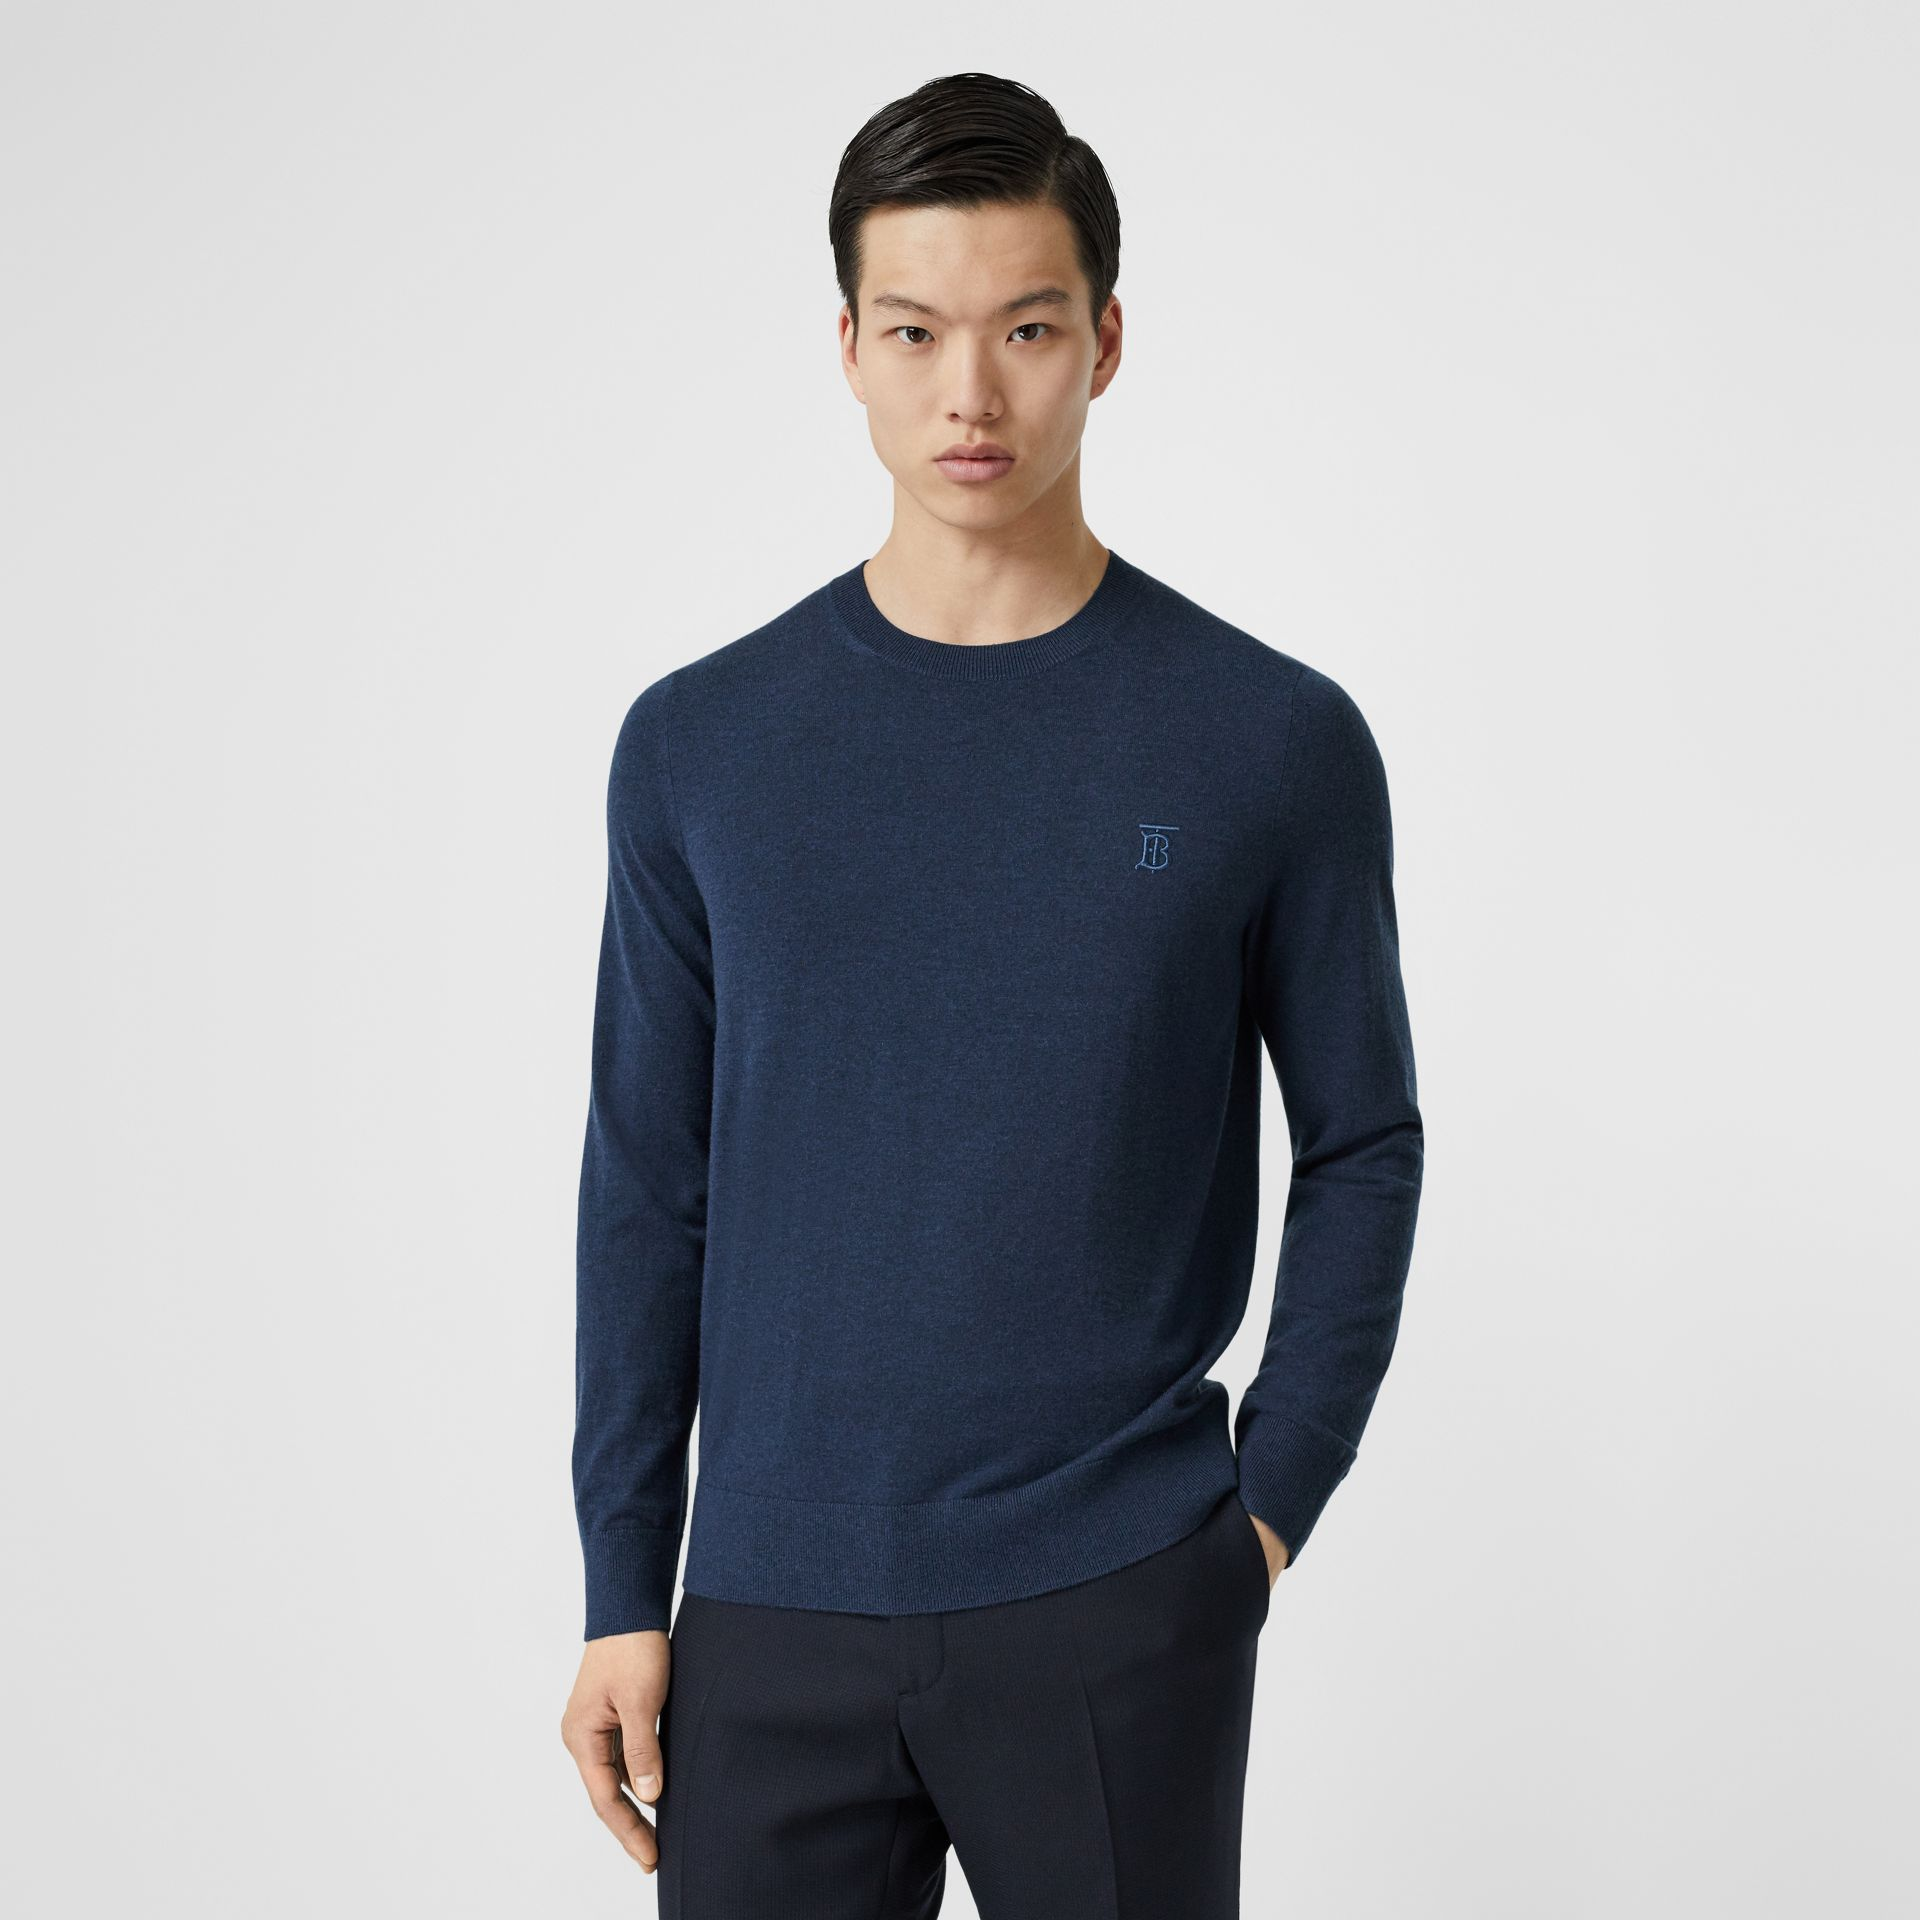 Monogram Motif Cashmere Sweater in Uniform Blue Melange - Men | Burberry - gallery image 0